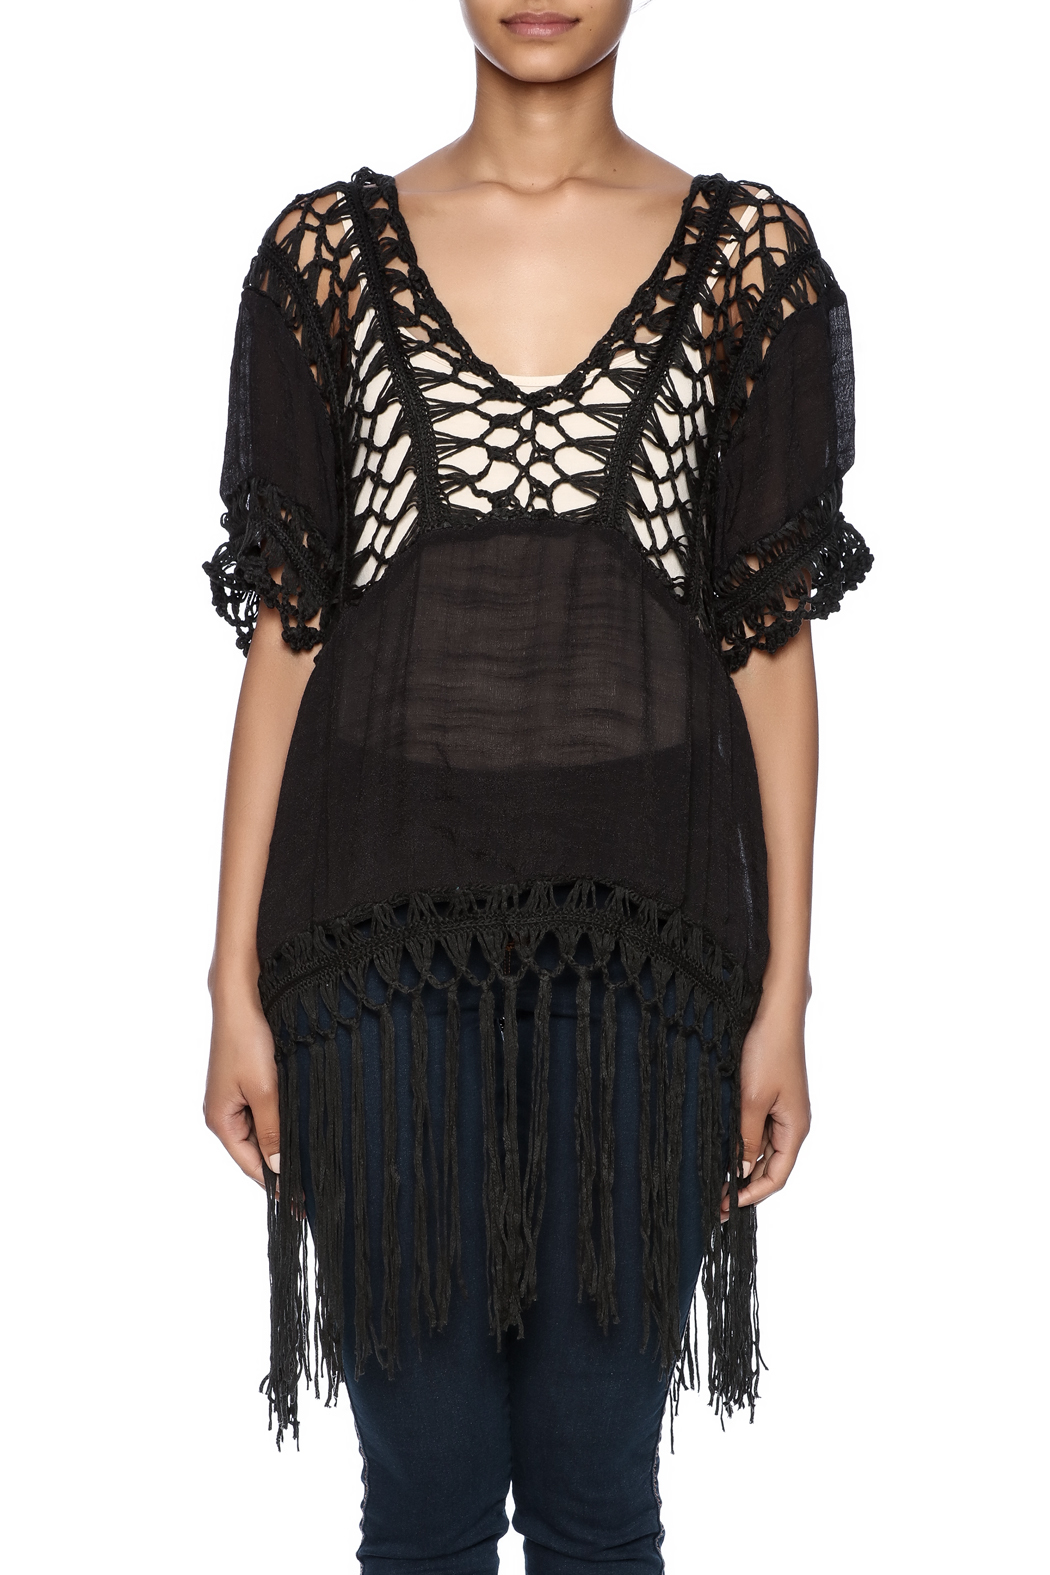 India Boutique Sexy Crochet Top - Side Cropped Image